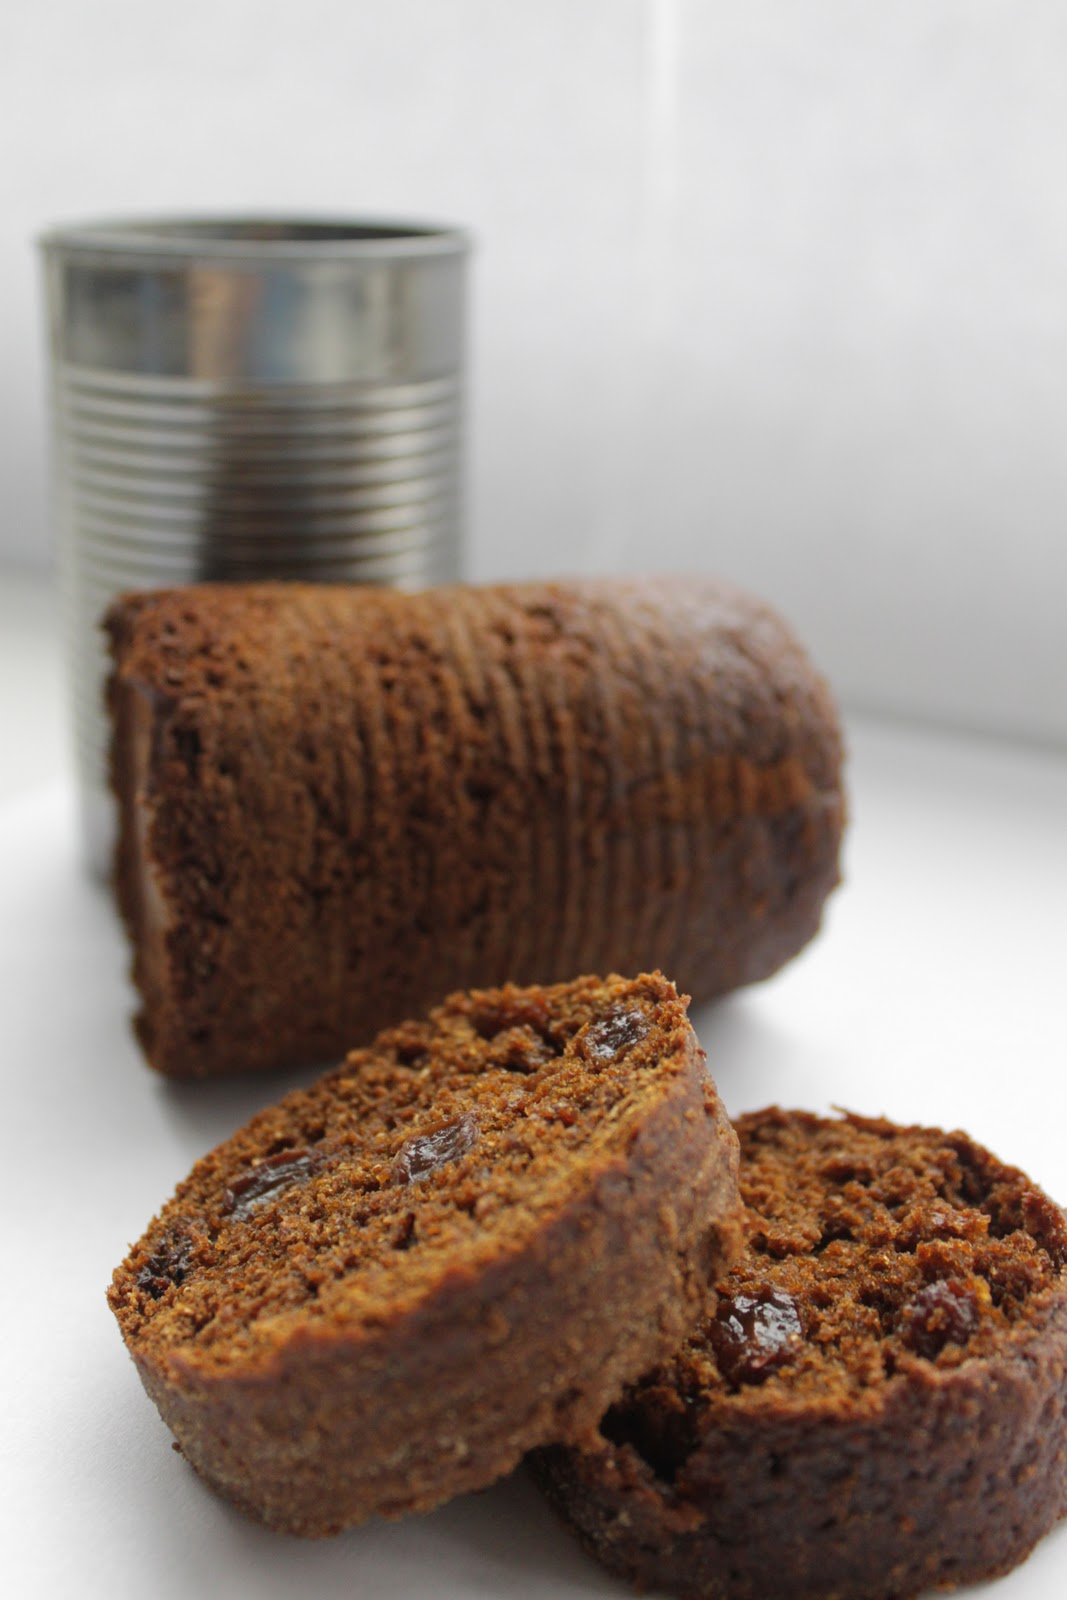 Boston Brown Bread (from My Mom's Best Recipes Cookbook)